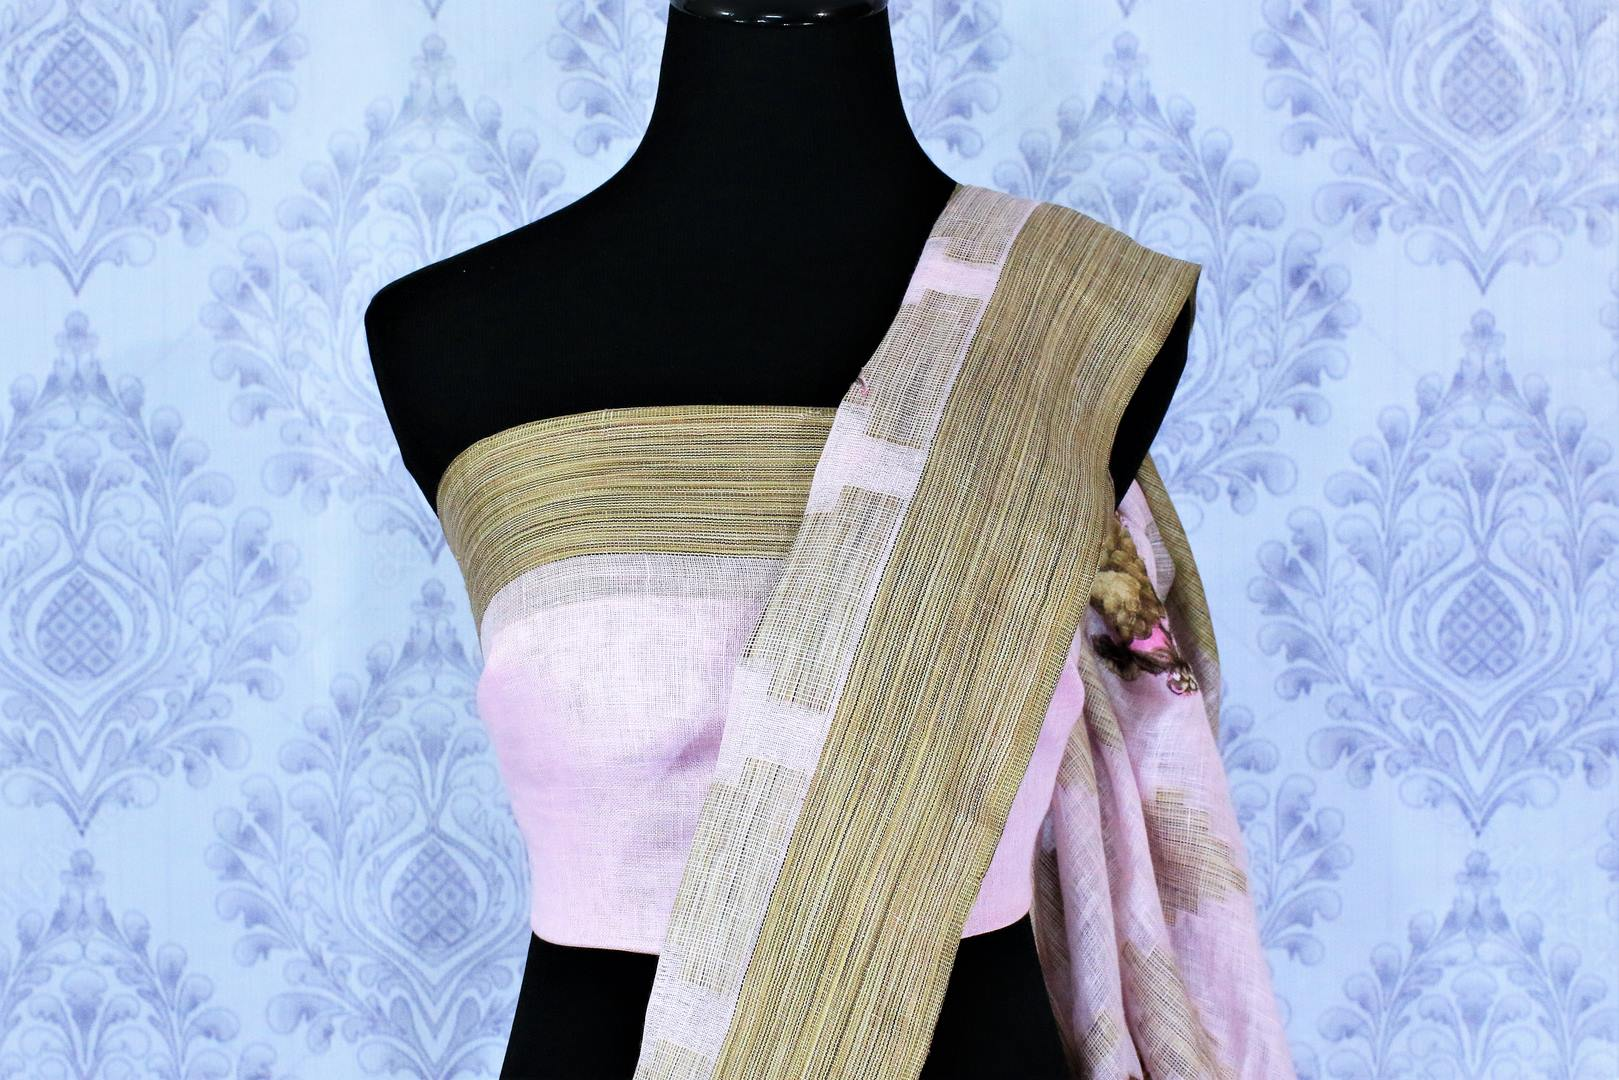 Buy baby pink linen saree online in USA with floral applique work. The saree is an alluring choice for summer parties and special occasions. Buy more such Indian handloom saris, pure linen sarees in USA at Pure Elegance exclusive fashion store or shop online at the comfort of your home.-blouse pallu